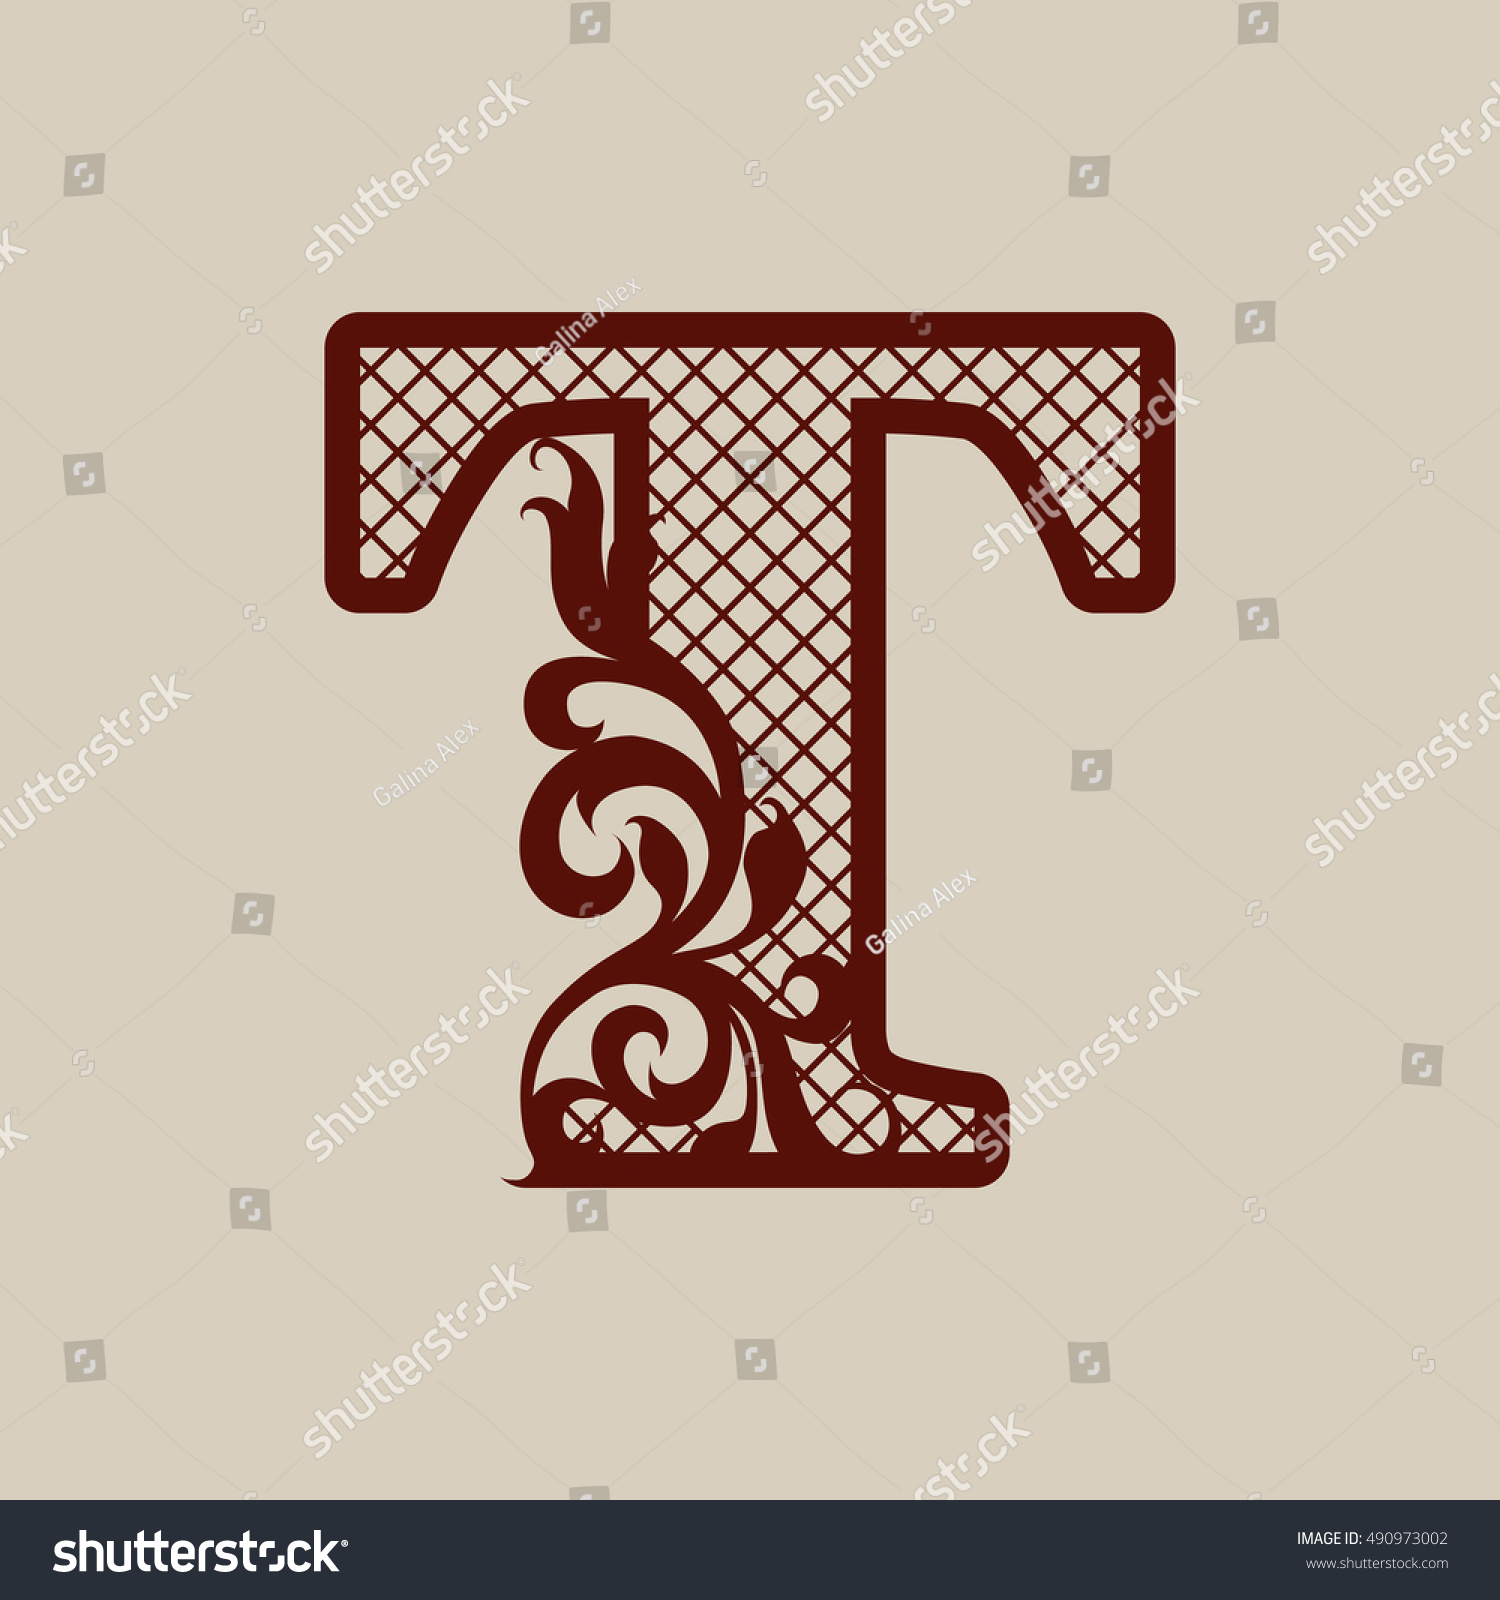 Elegant Monogram Letter T Carved Openwork Stock Vector (Royalty Free ...